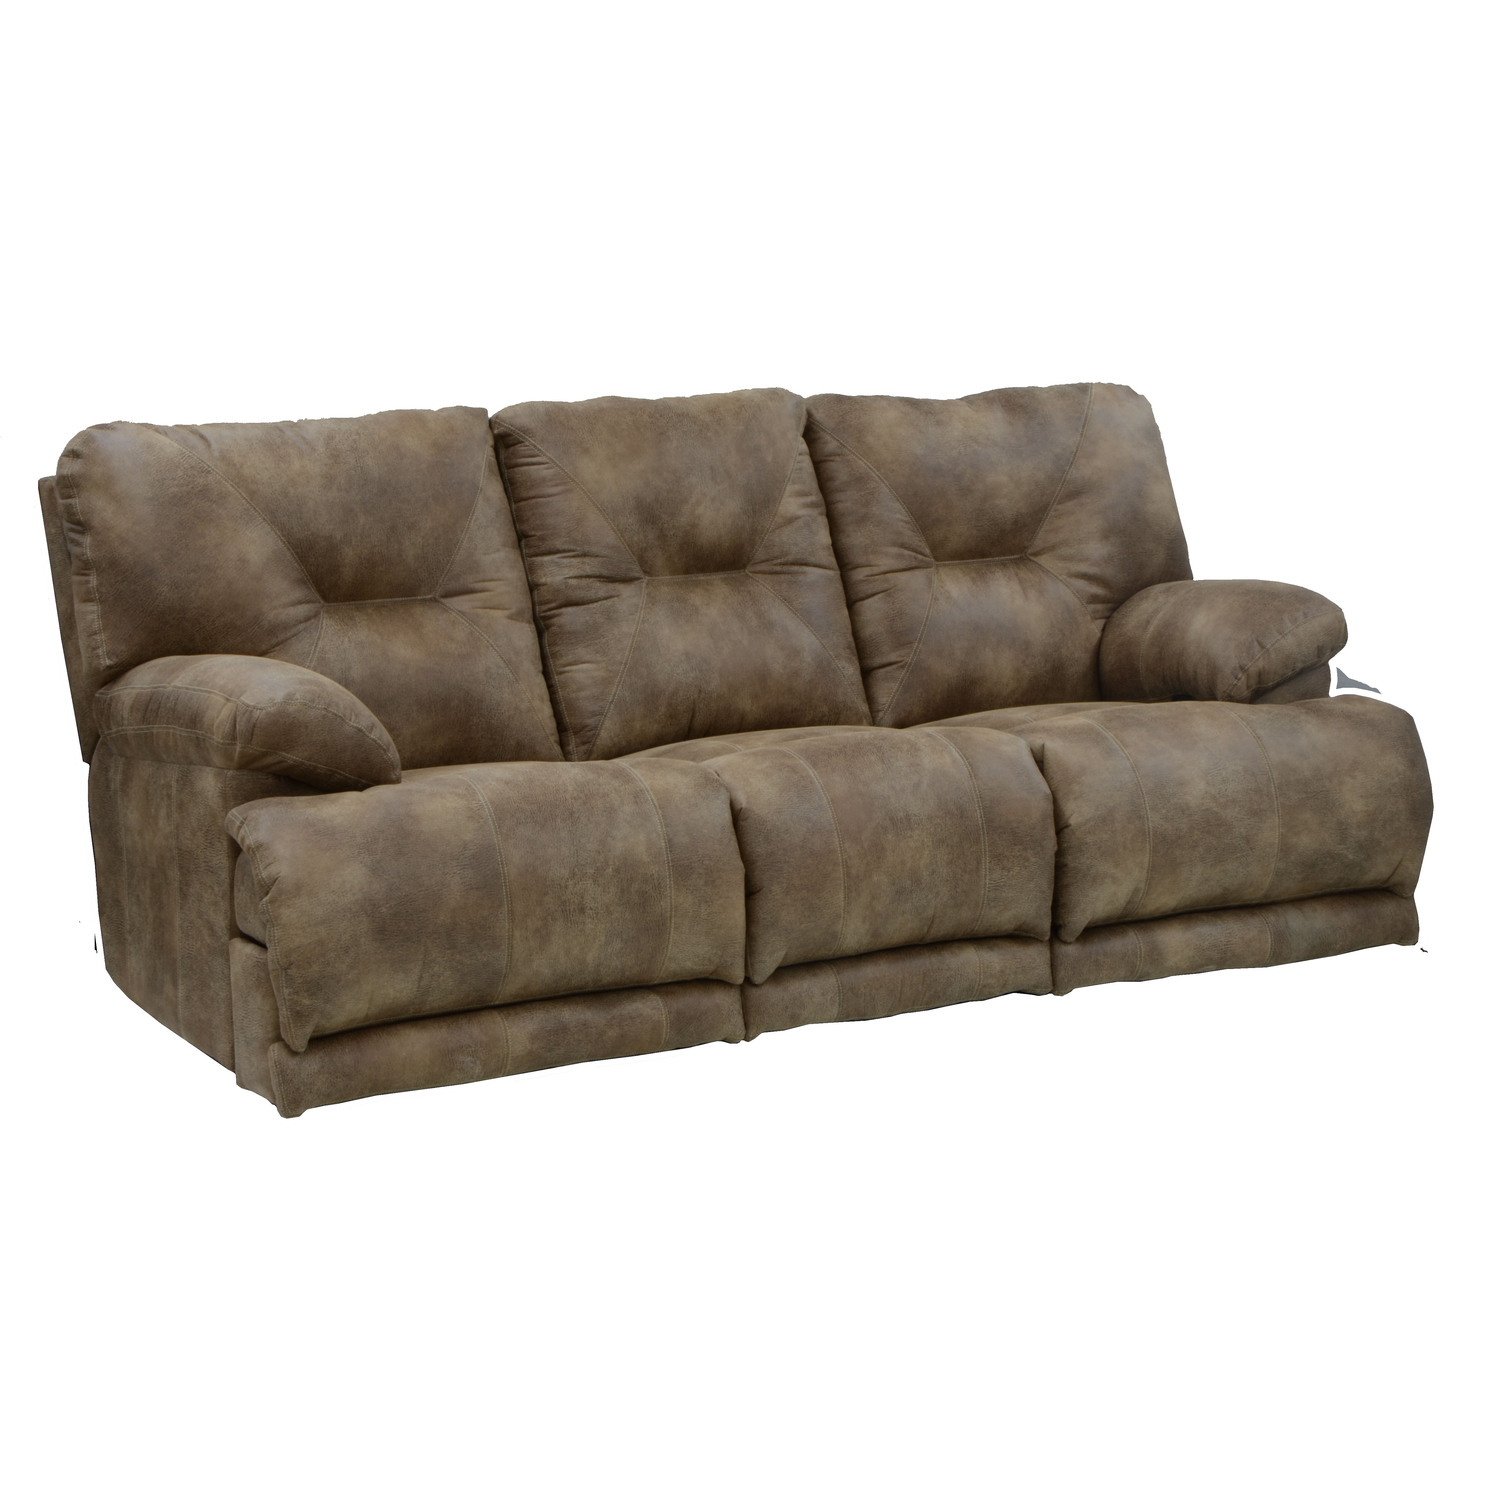 Catnapper Voyager Sofa With 3 Recliners By Oj Commerce